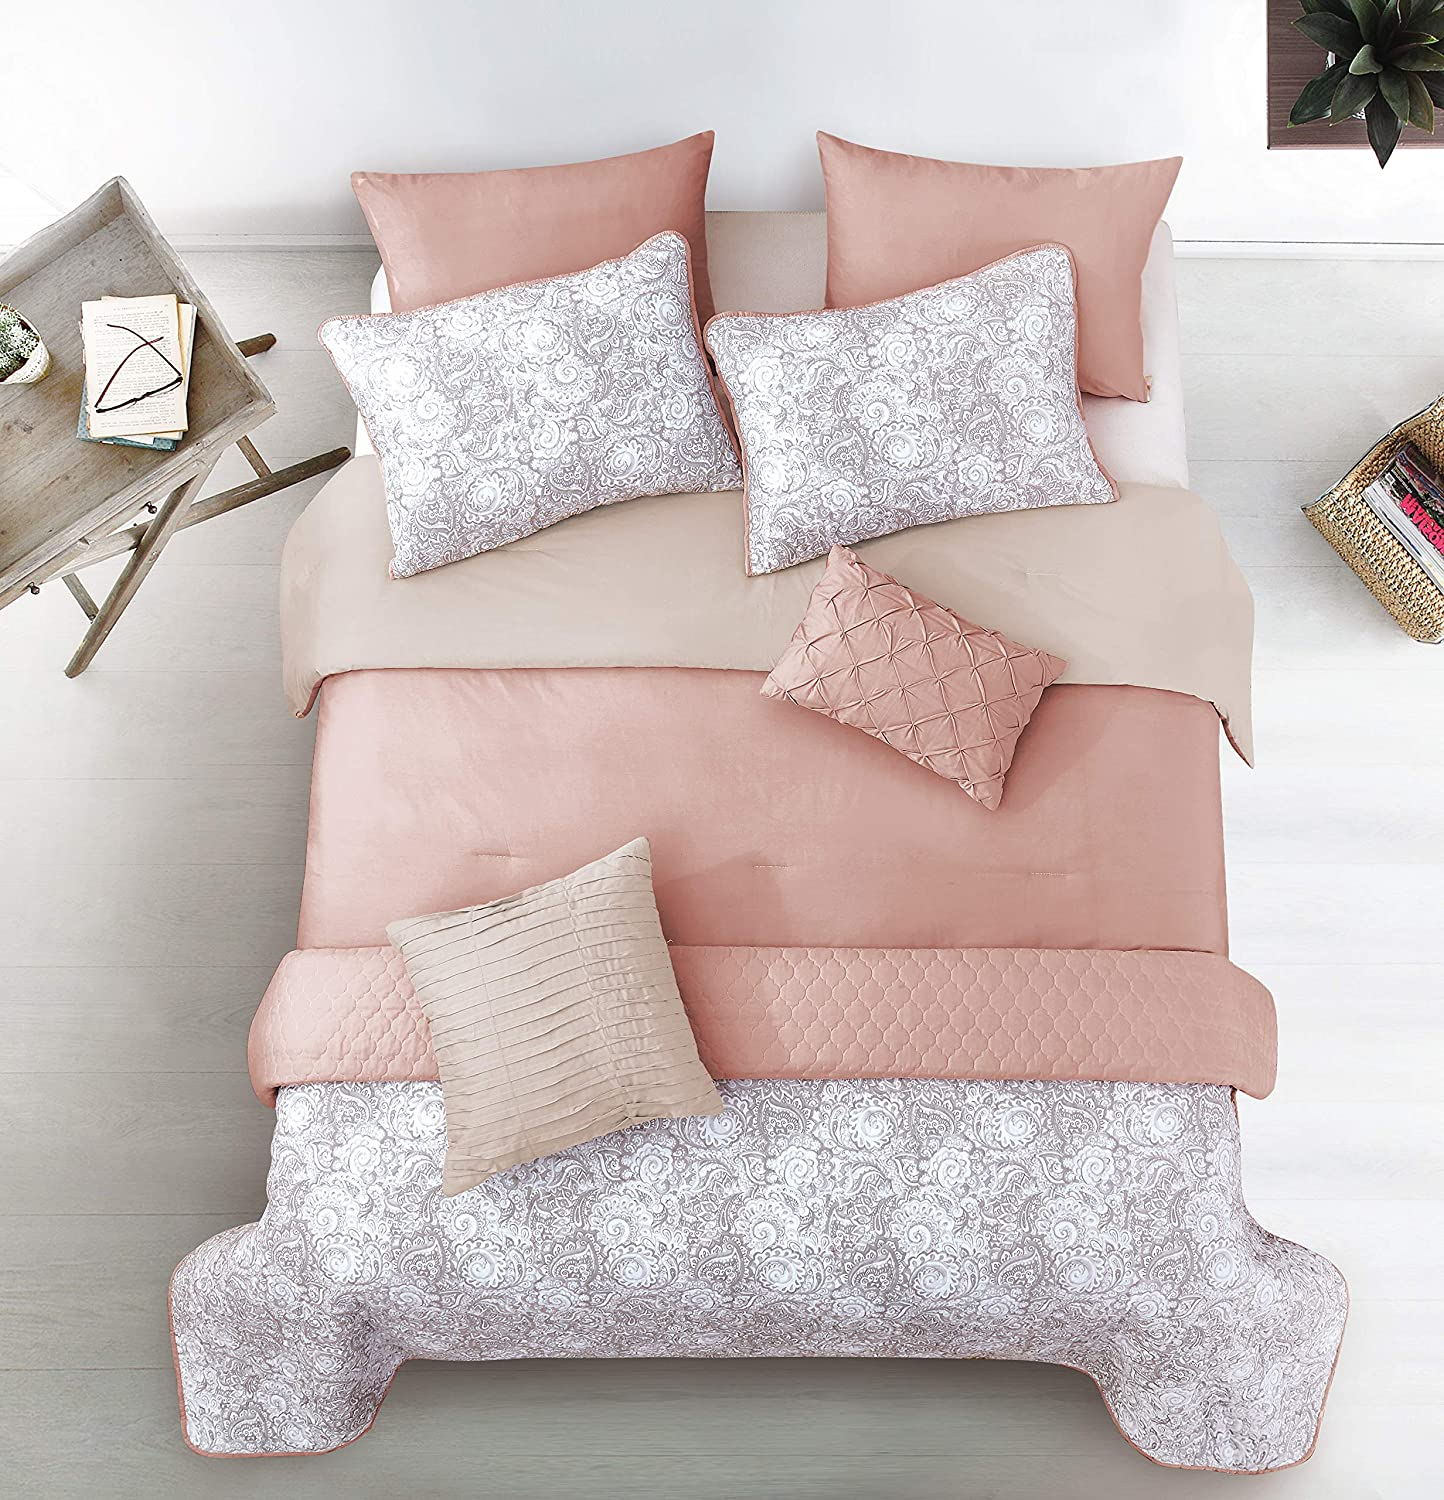 Riverbrook Home Layered Solid Comforter and Coverlet Set, Full/Queen, 8-Piece, Katie - Blush Taupe